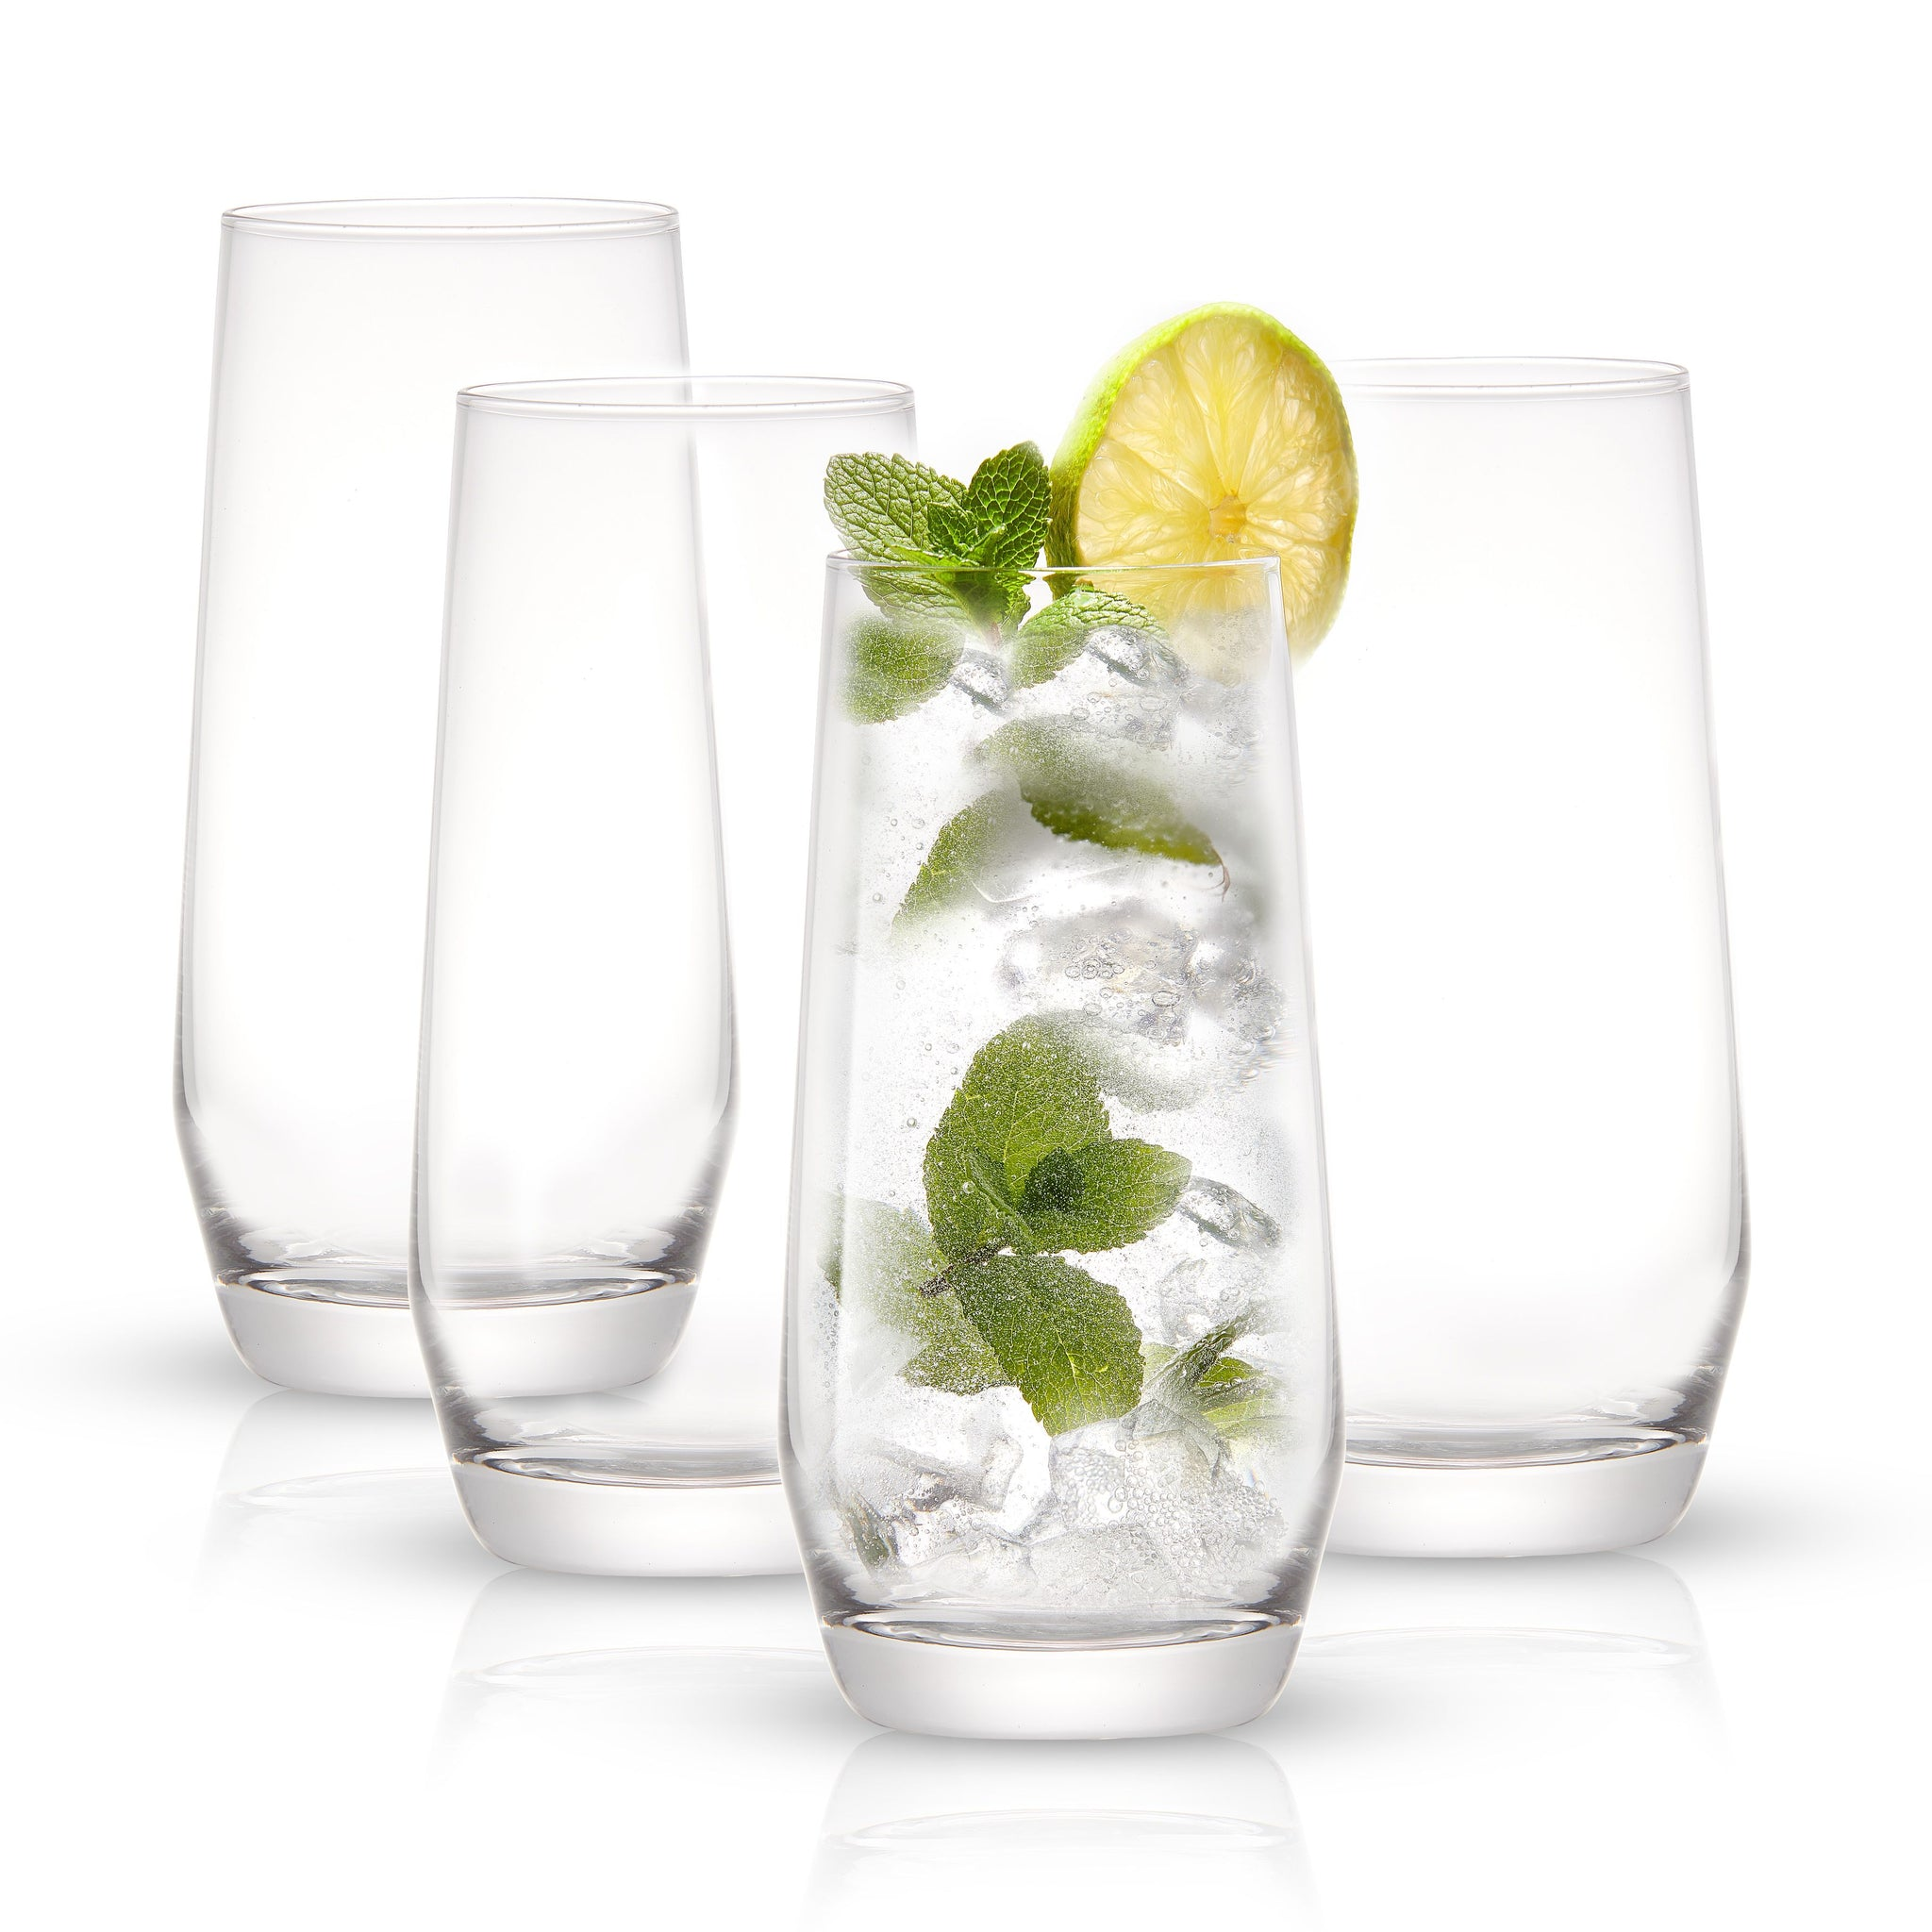 Gwen<br/>Highball Glasses<br/>Set of 4